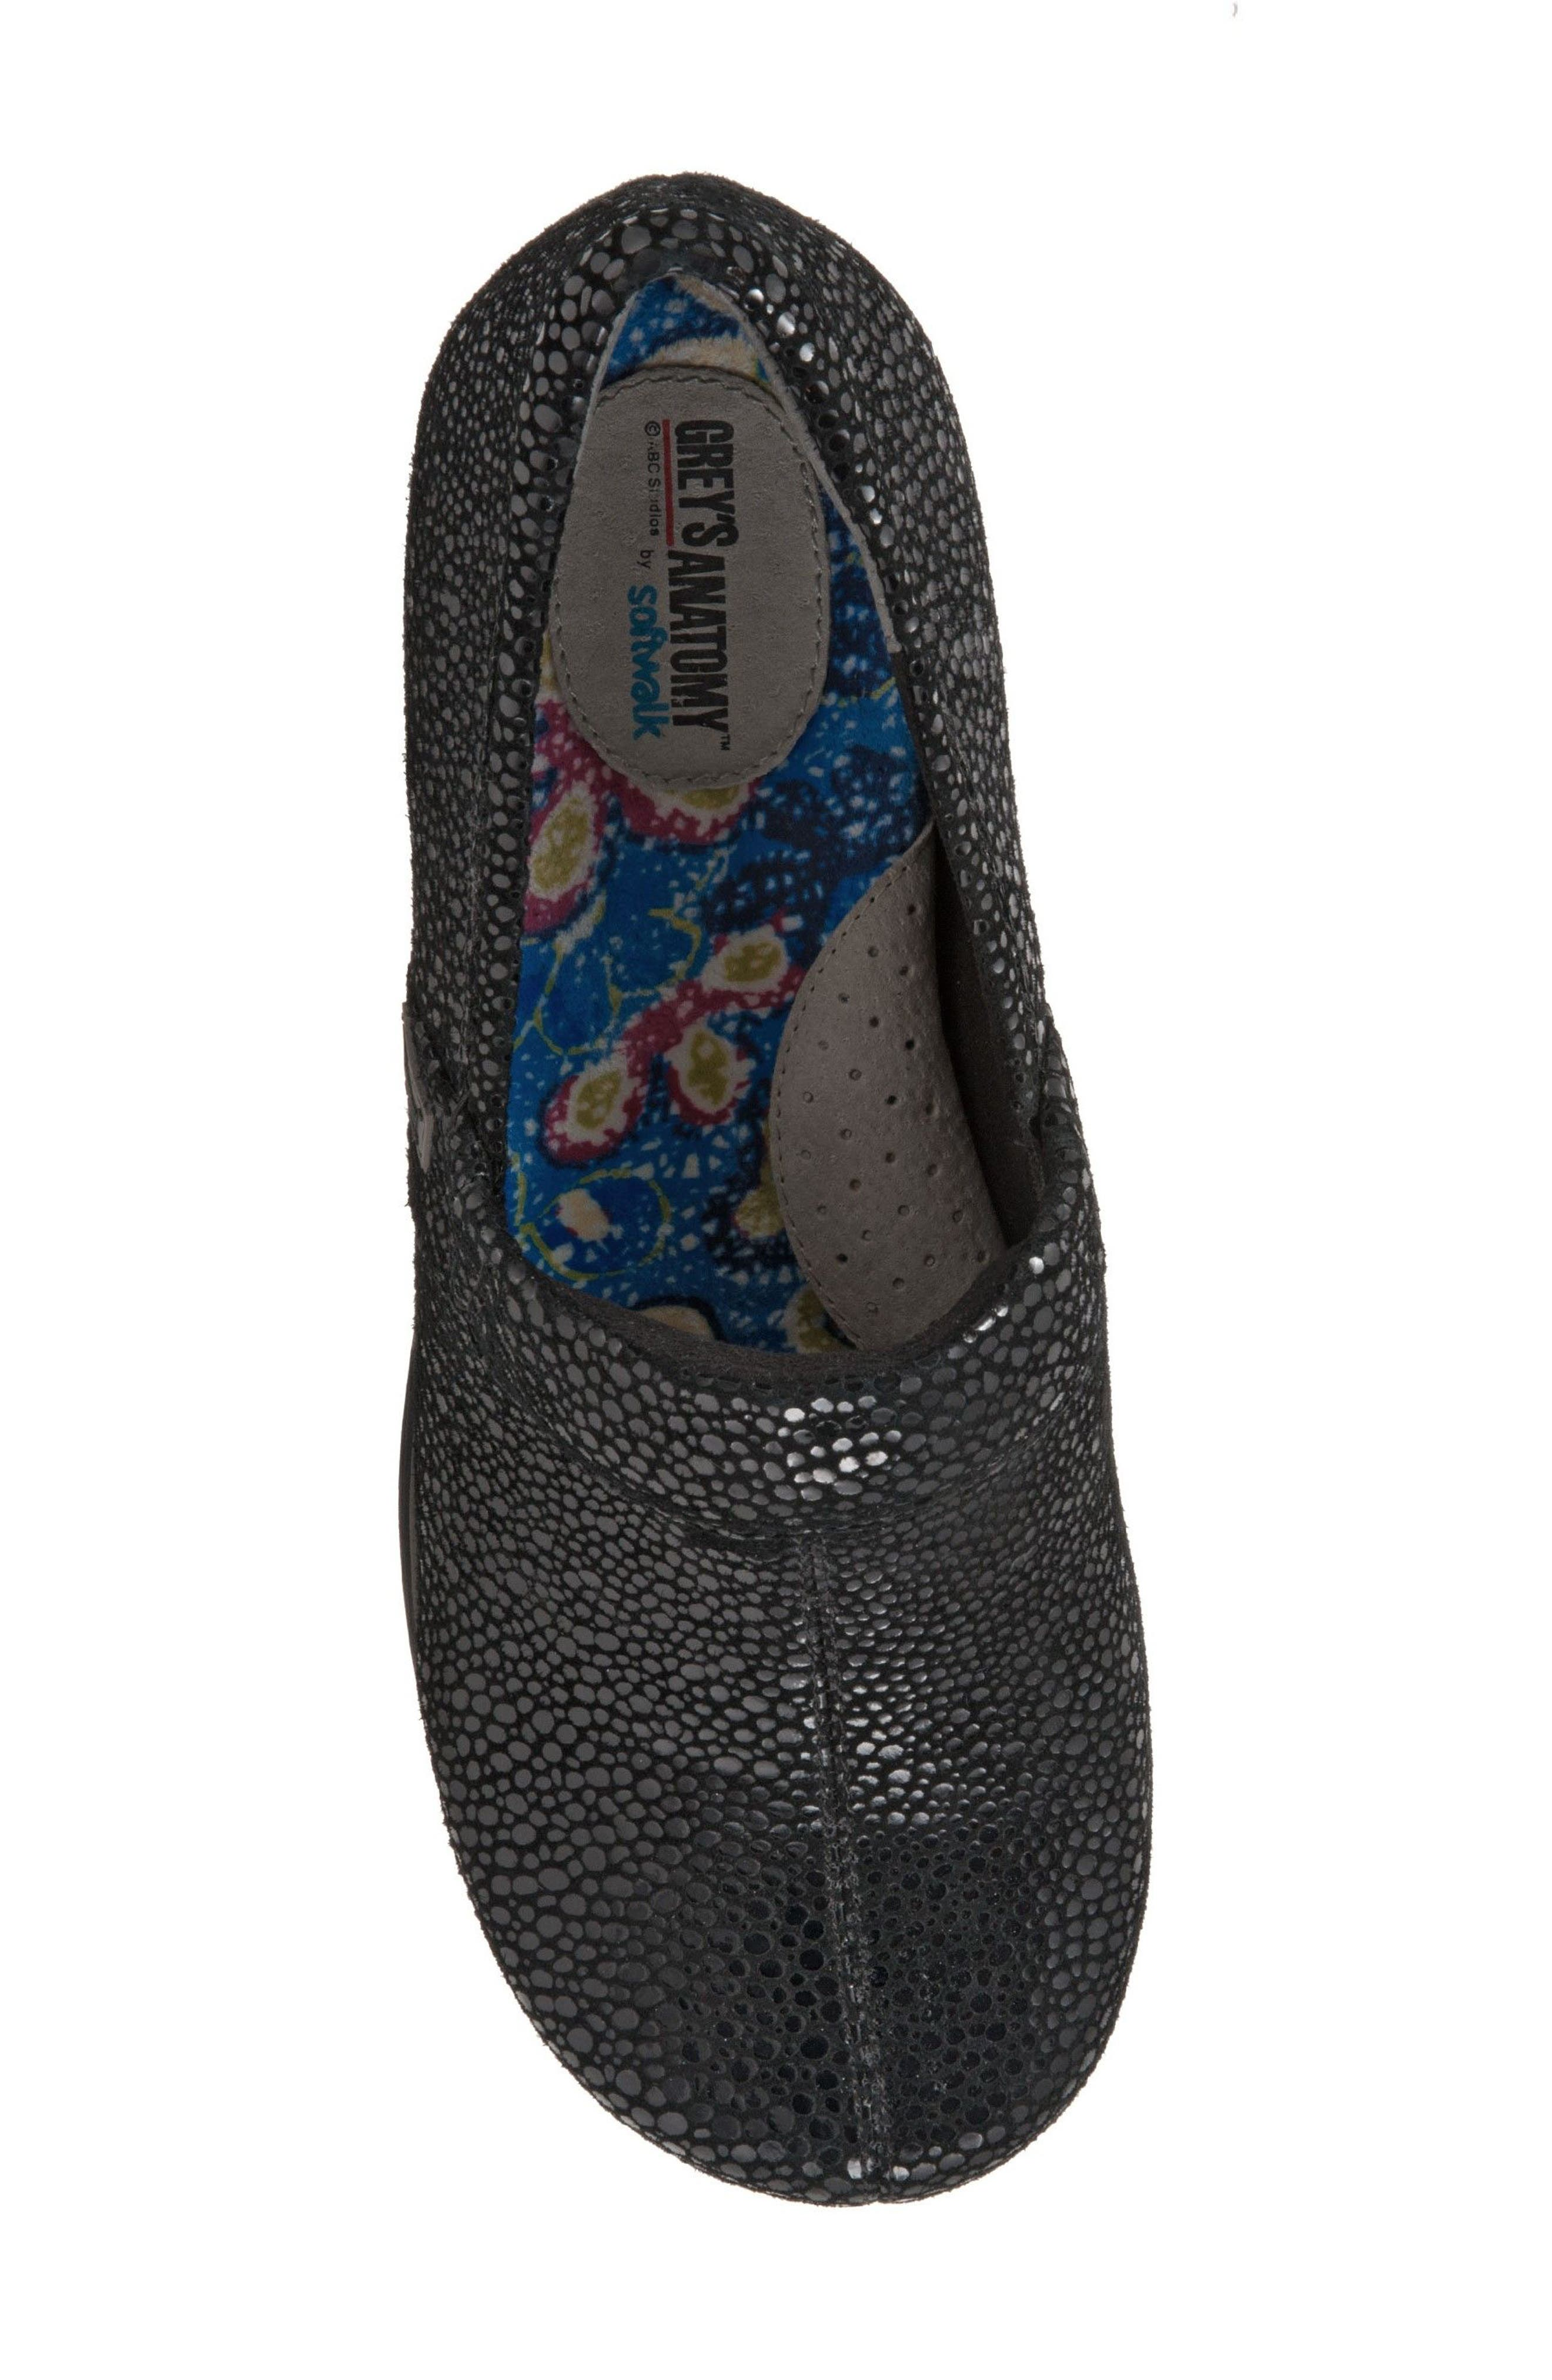 Grey's Anatomy<sup>®</sup> by Softwalk<sup>®</sup> 'Meredith' Leather Clog,                             Alternate thumbnail 5, color,                             004